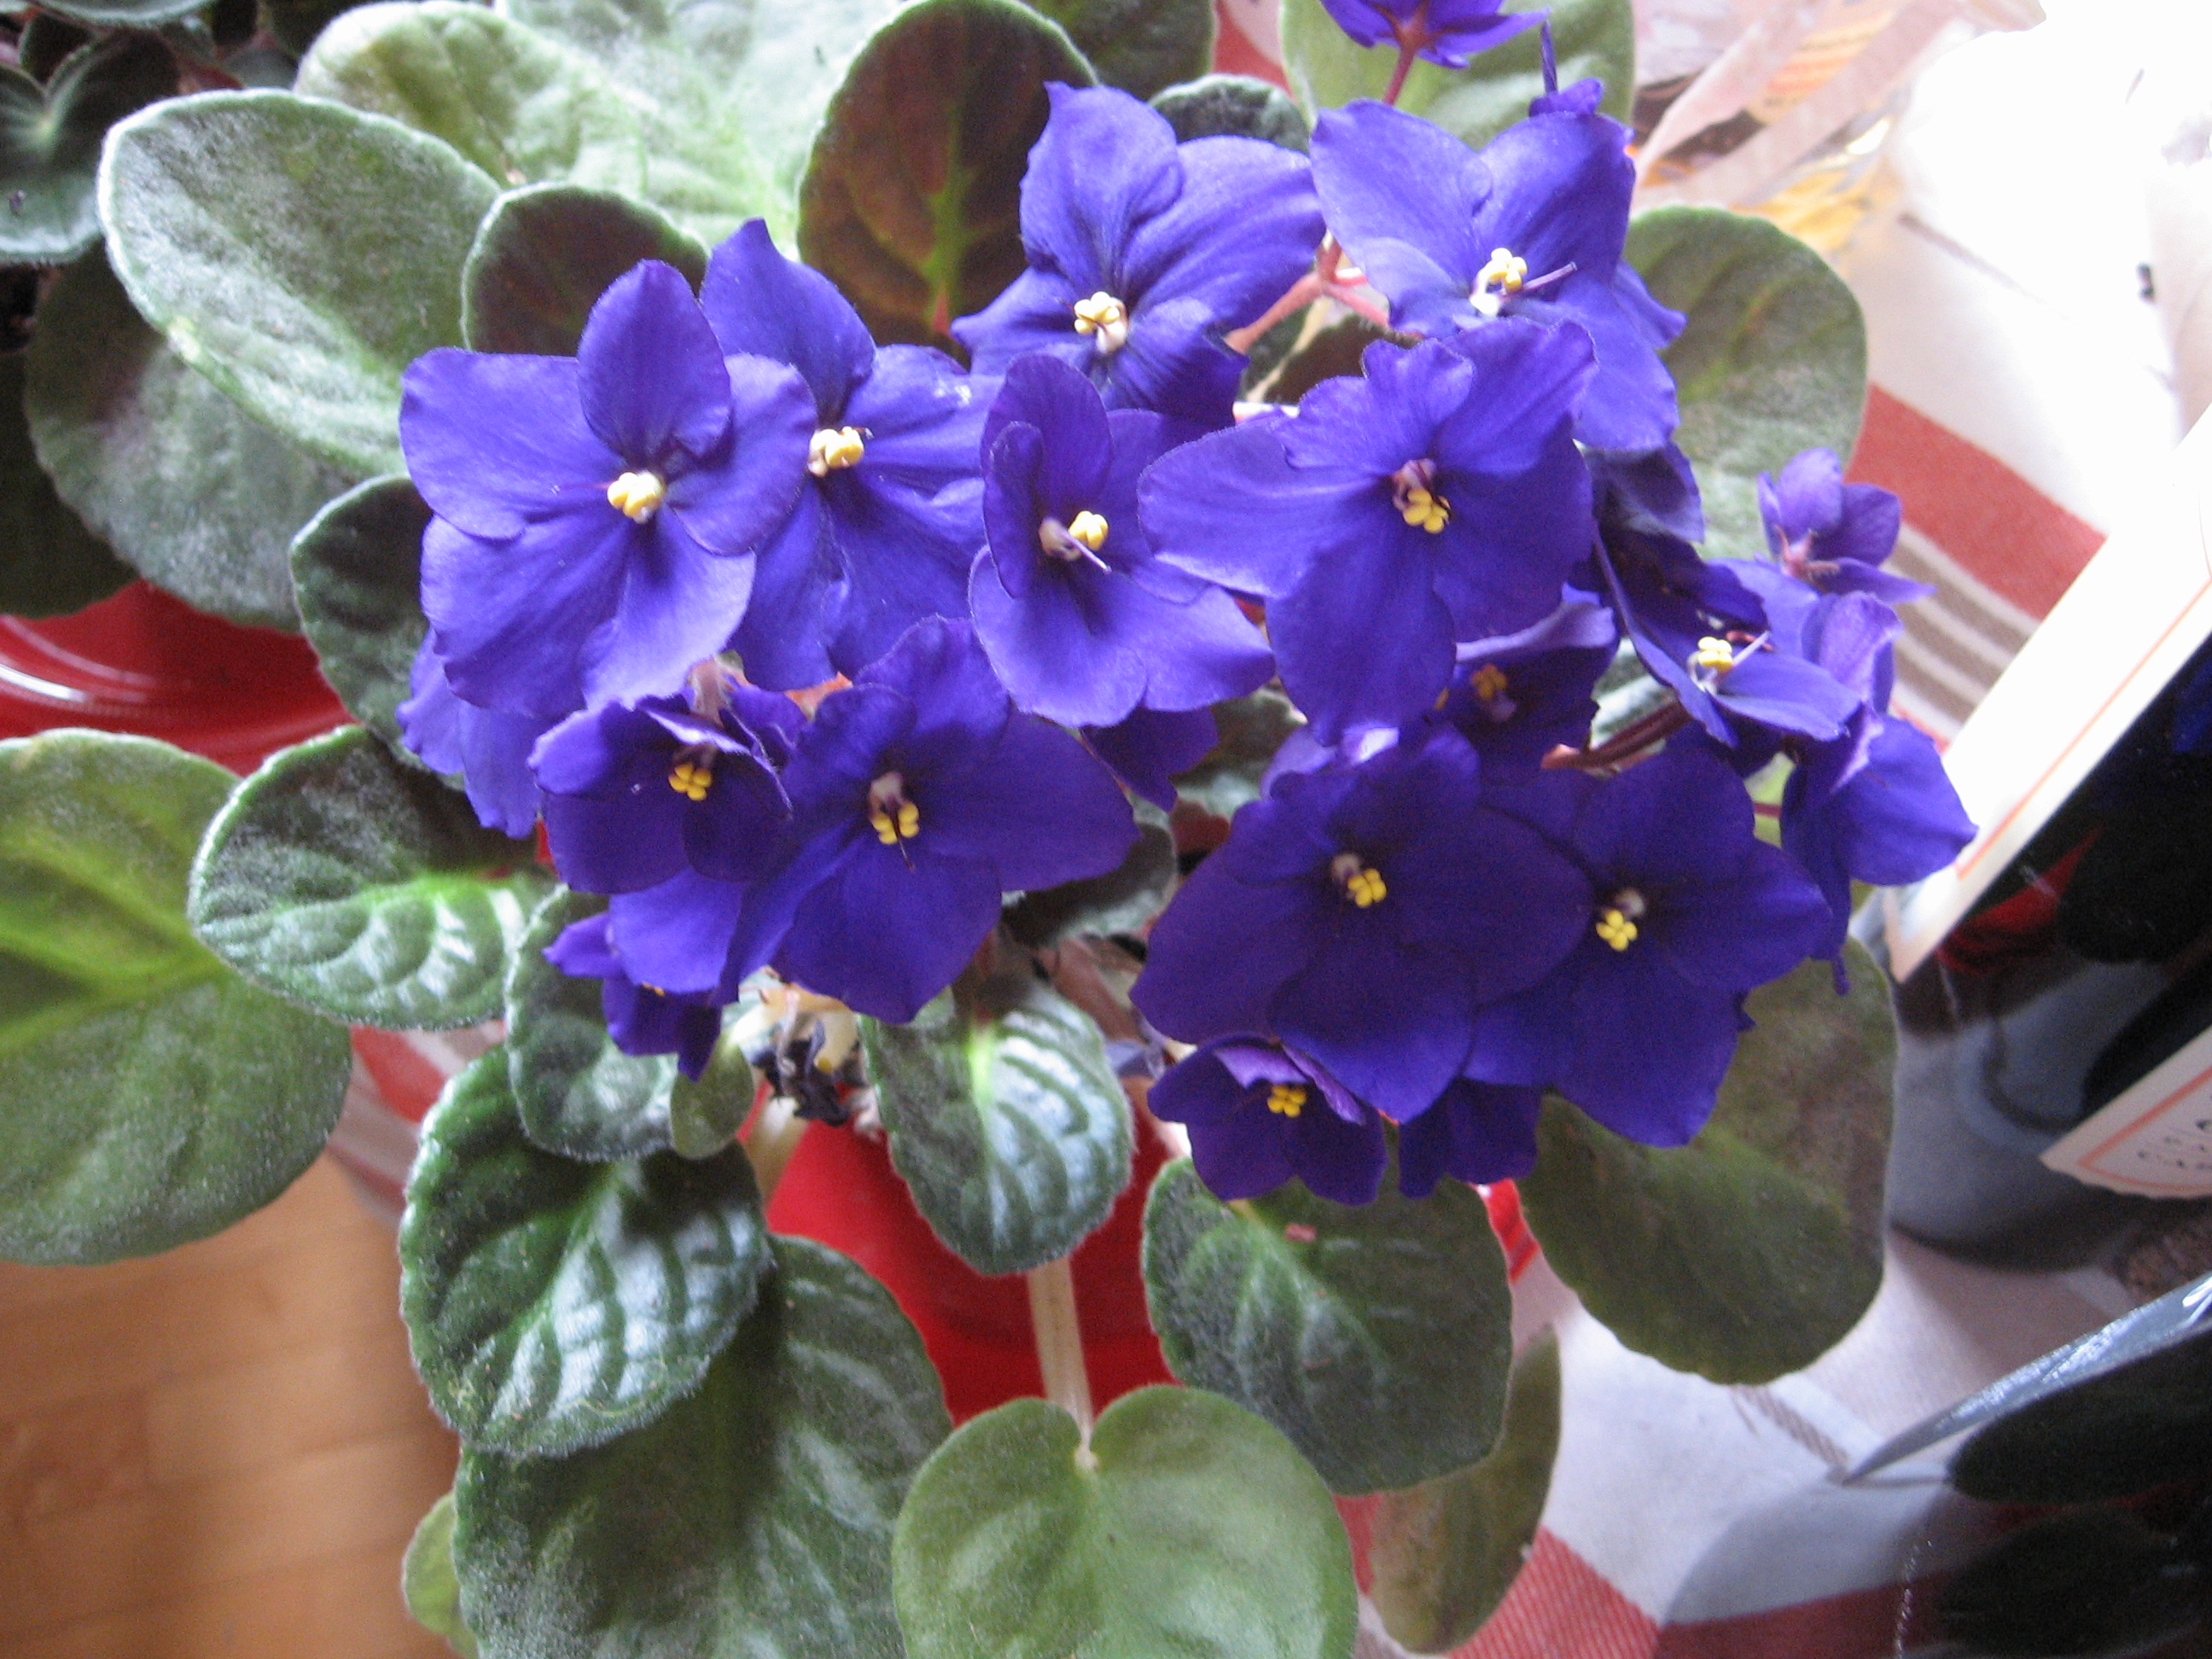 African Violet, photo by Jeff Shaumeyer, used under a Creative Commons License.